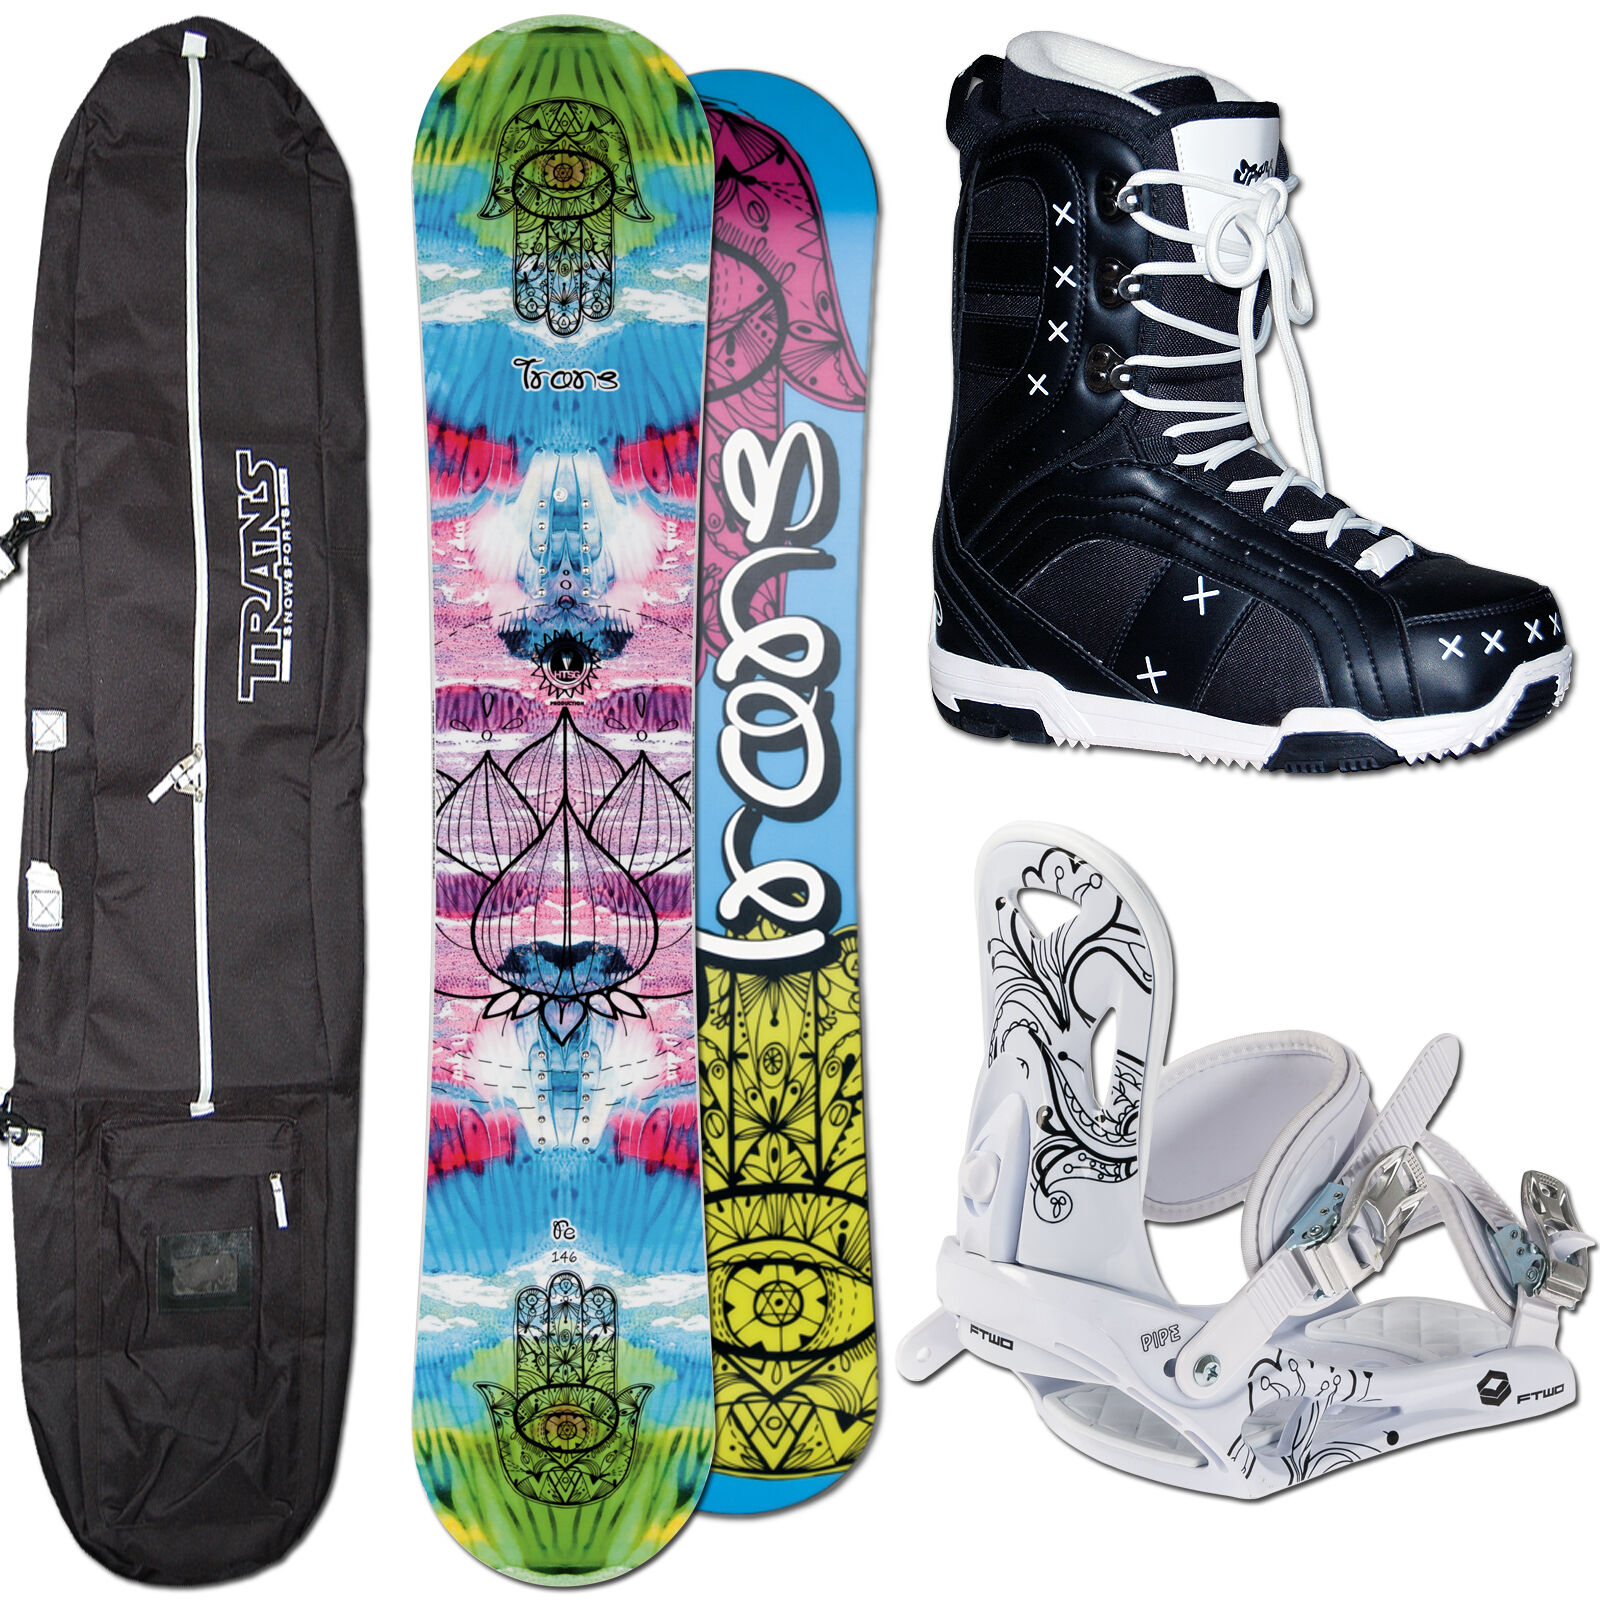 DAMEN SNOWBOARD TRANS FE 152 CM CAMBER + FTWO PIPE BINDUNG M + BAG + BOOTS